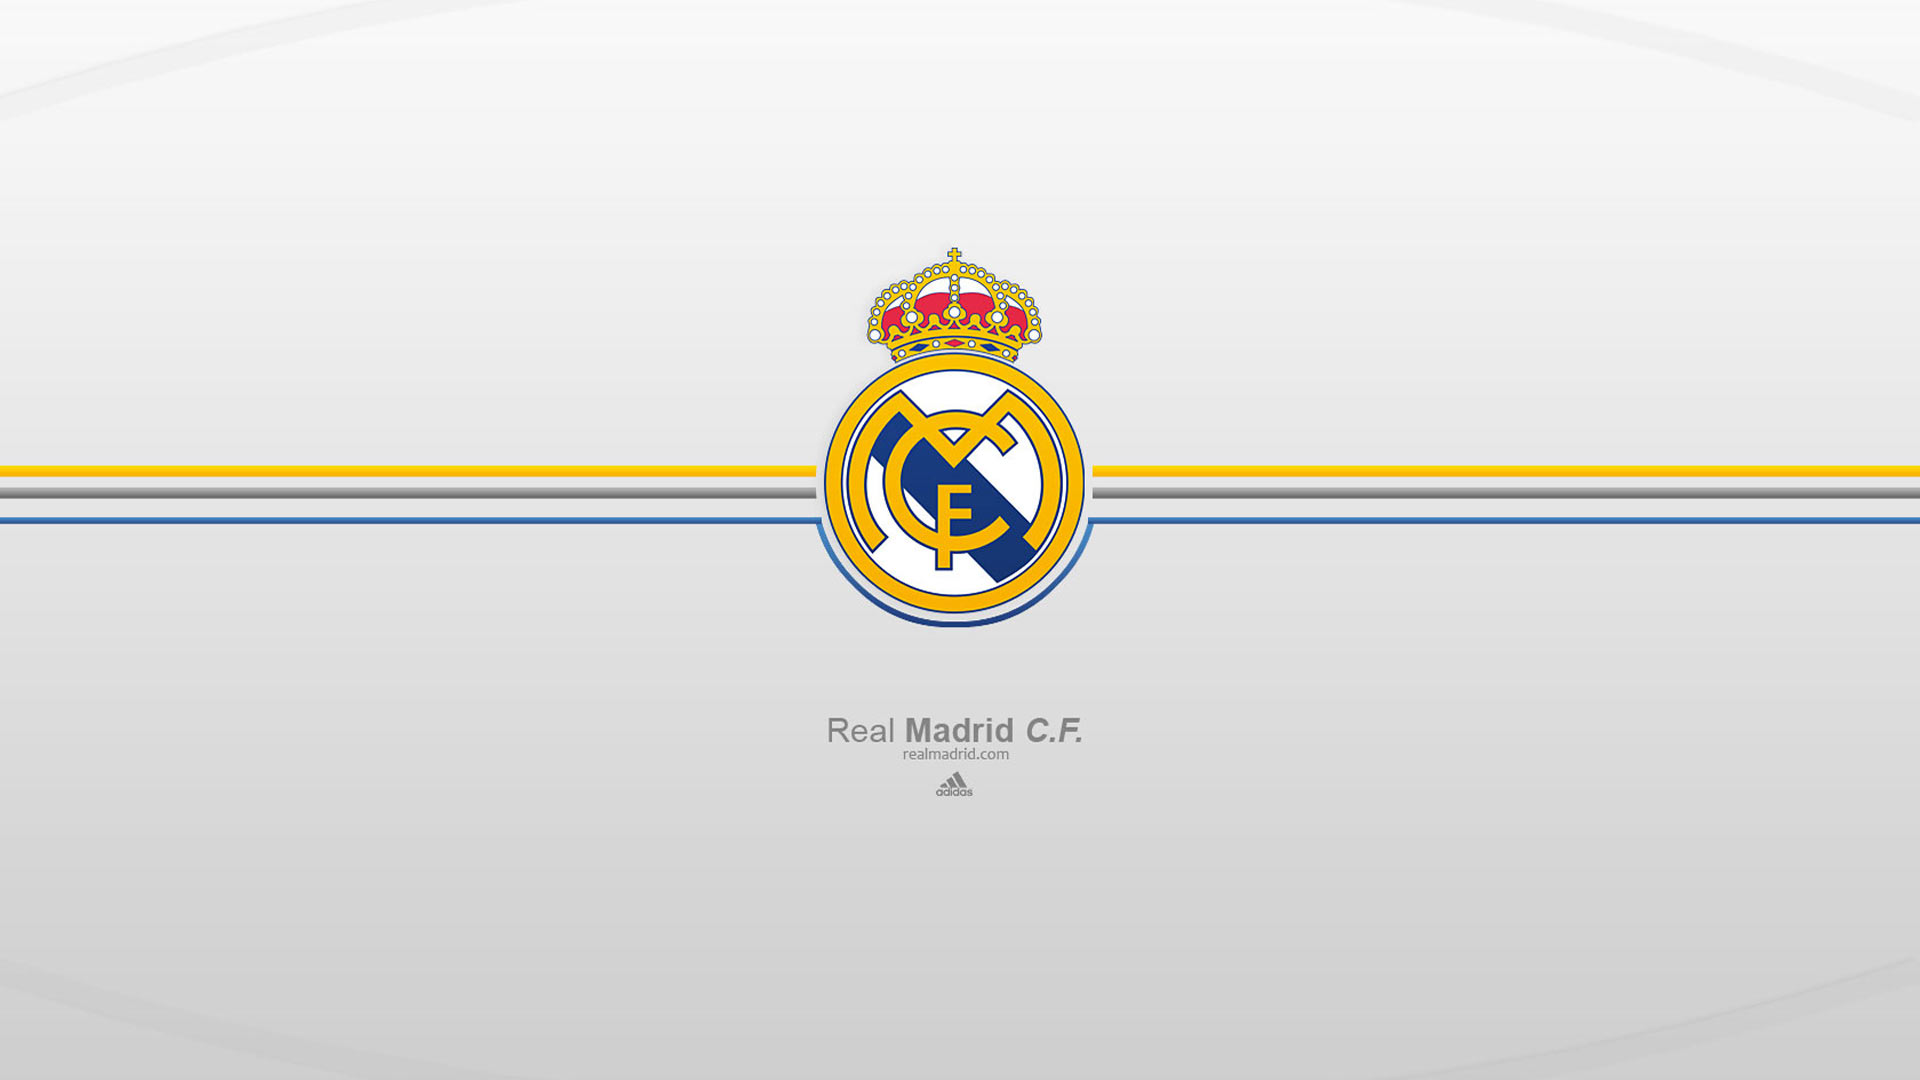 Real Madrid Wallpaper White Backgrounds